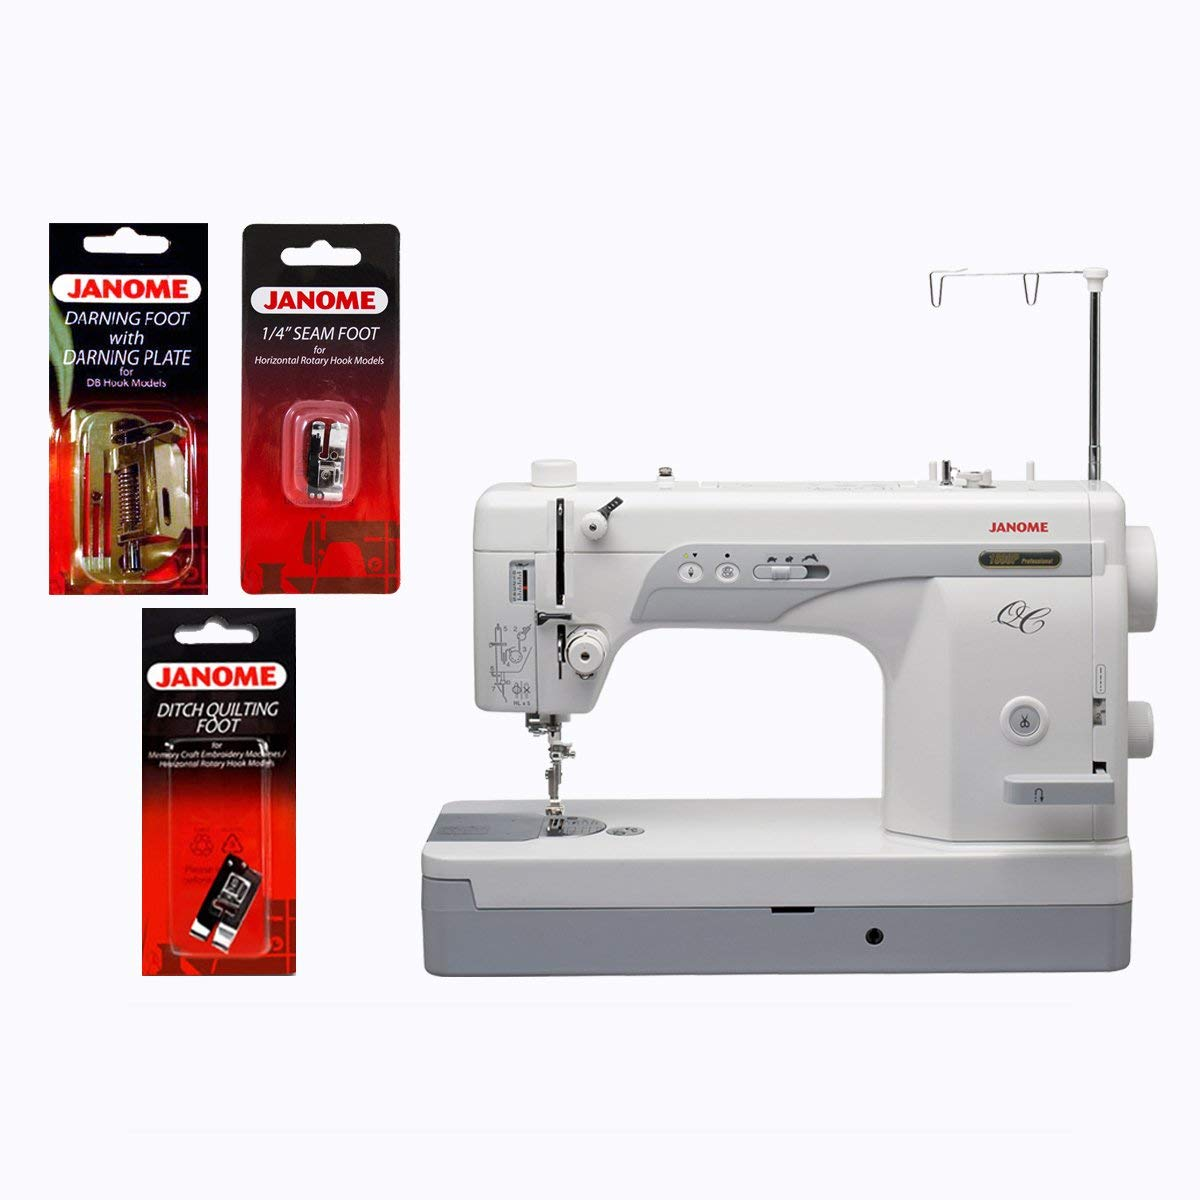 Janome 1600P-QC janome sewing machines